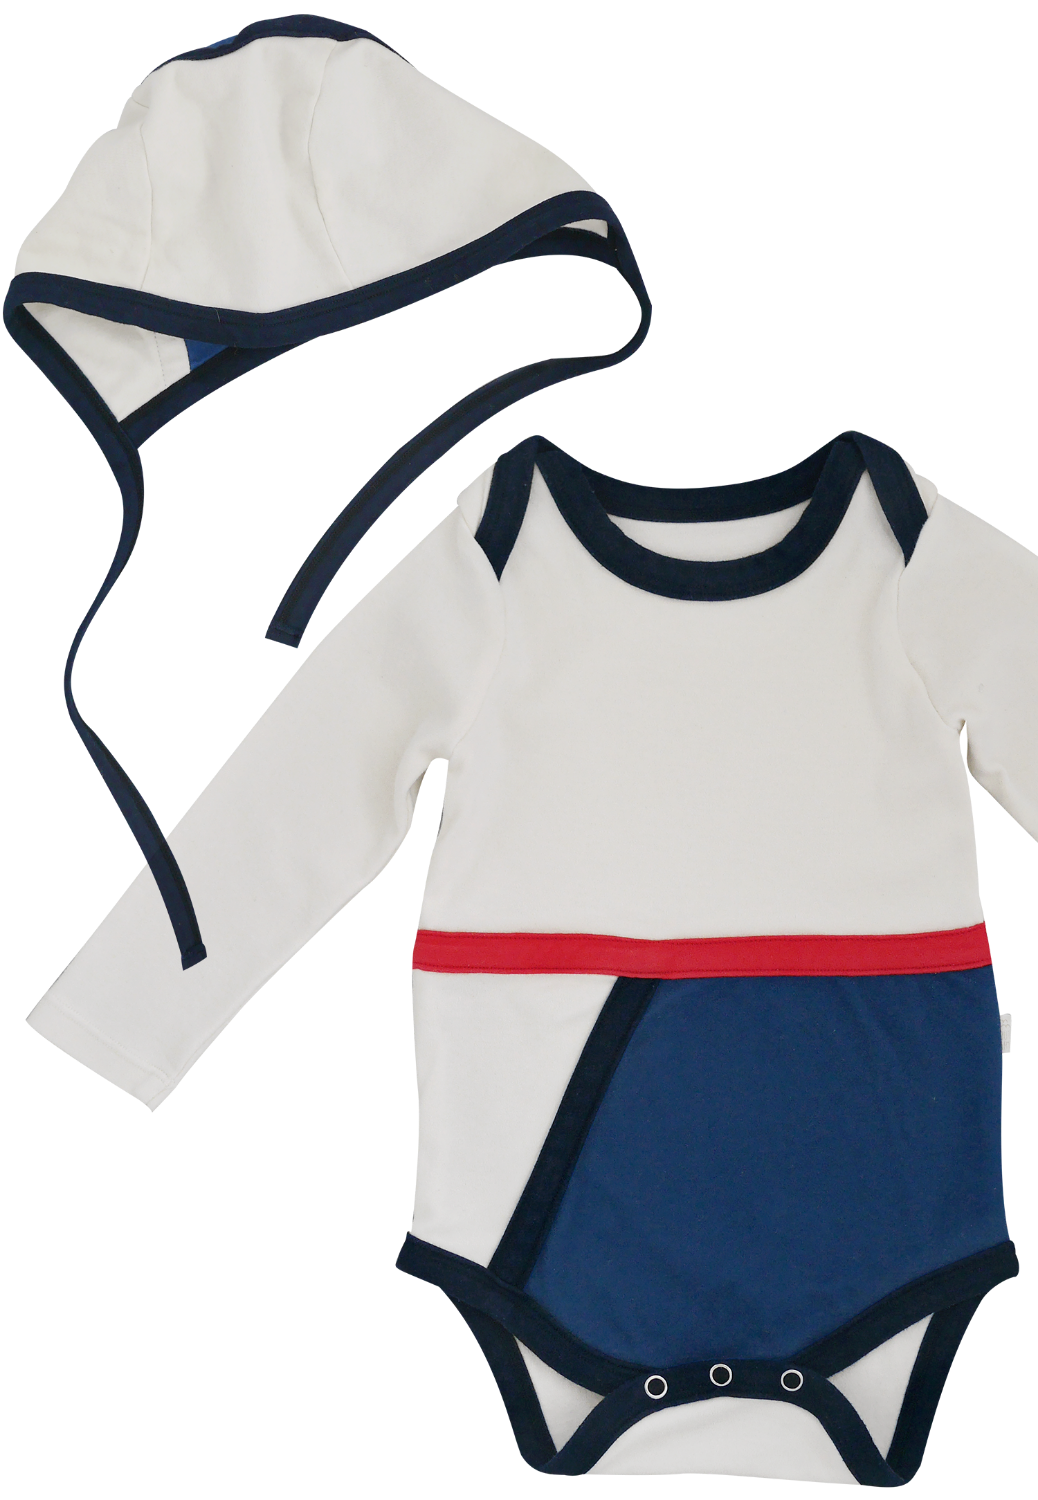 KBP X Aout Racer Body Suit Set